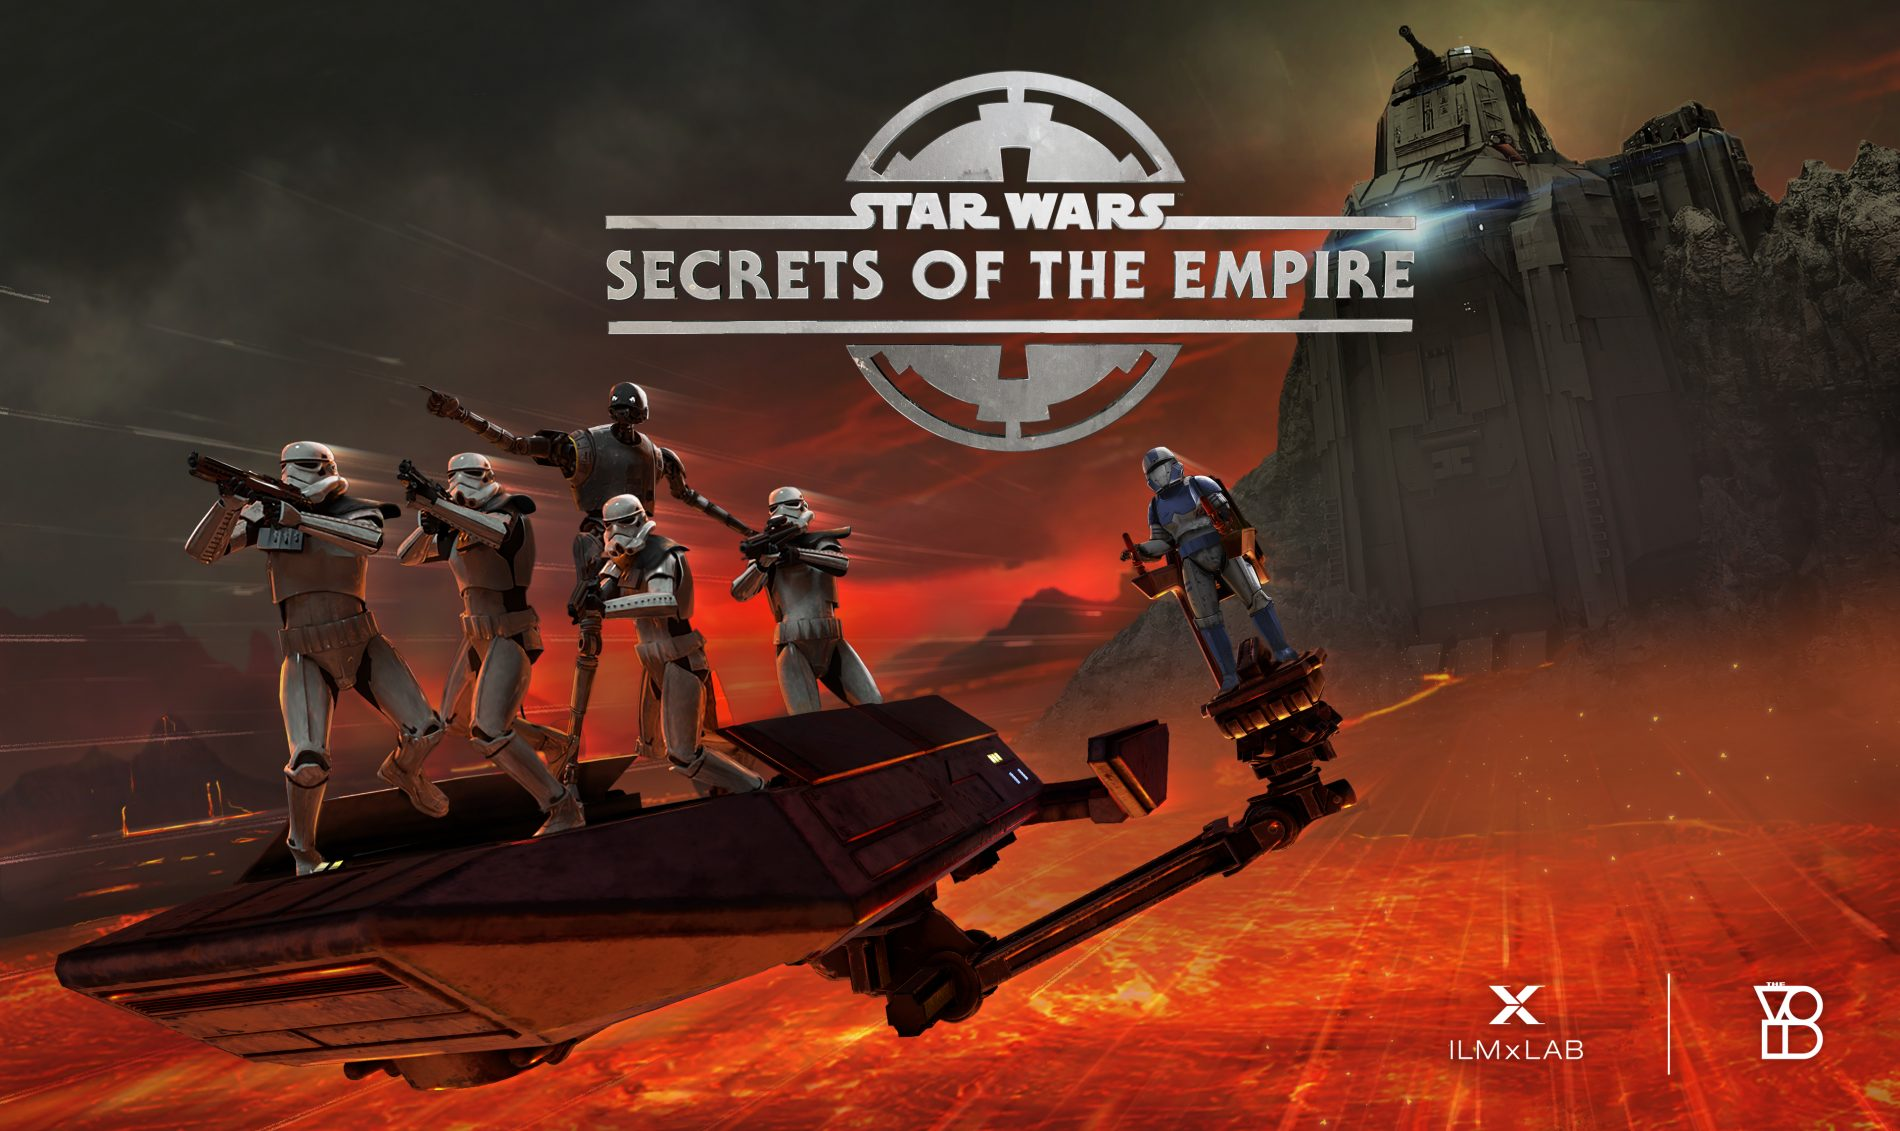 The VOID Star Wars Secret of the Empire